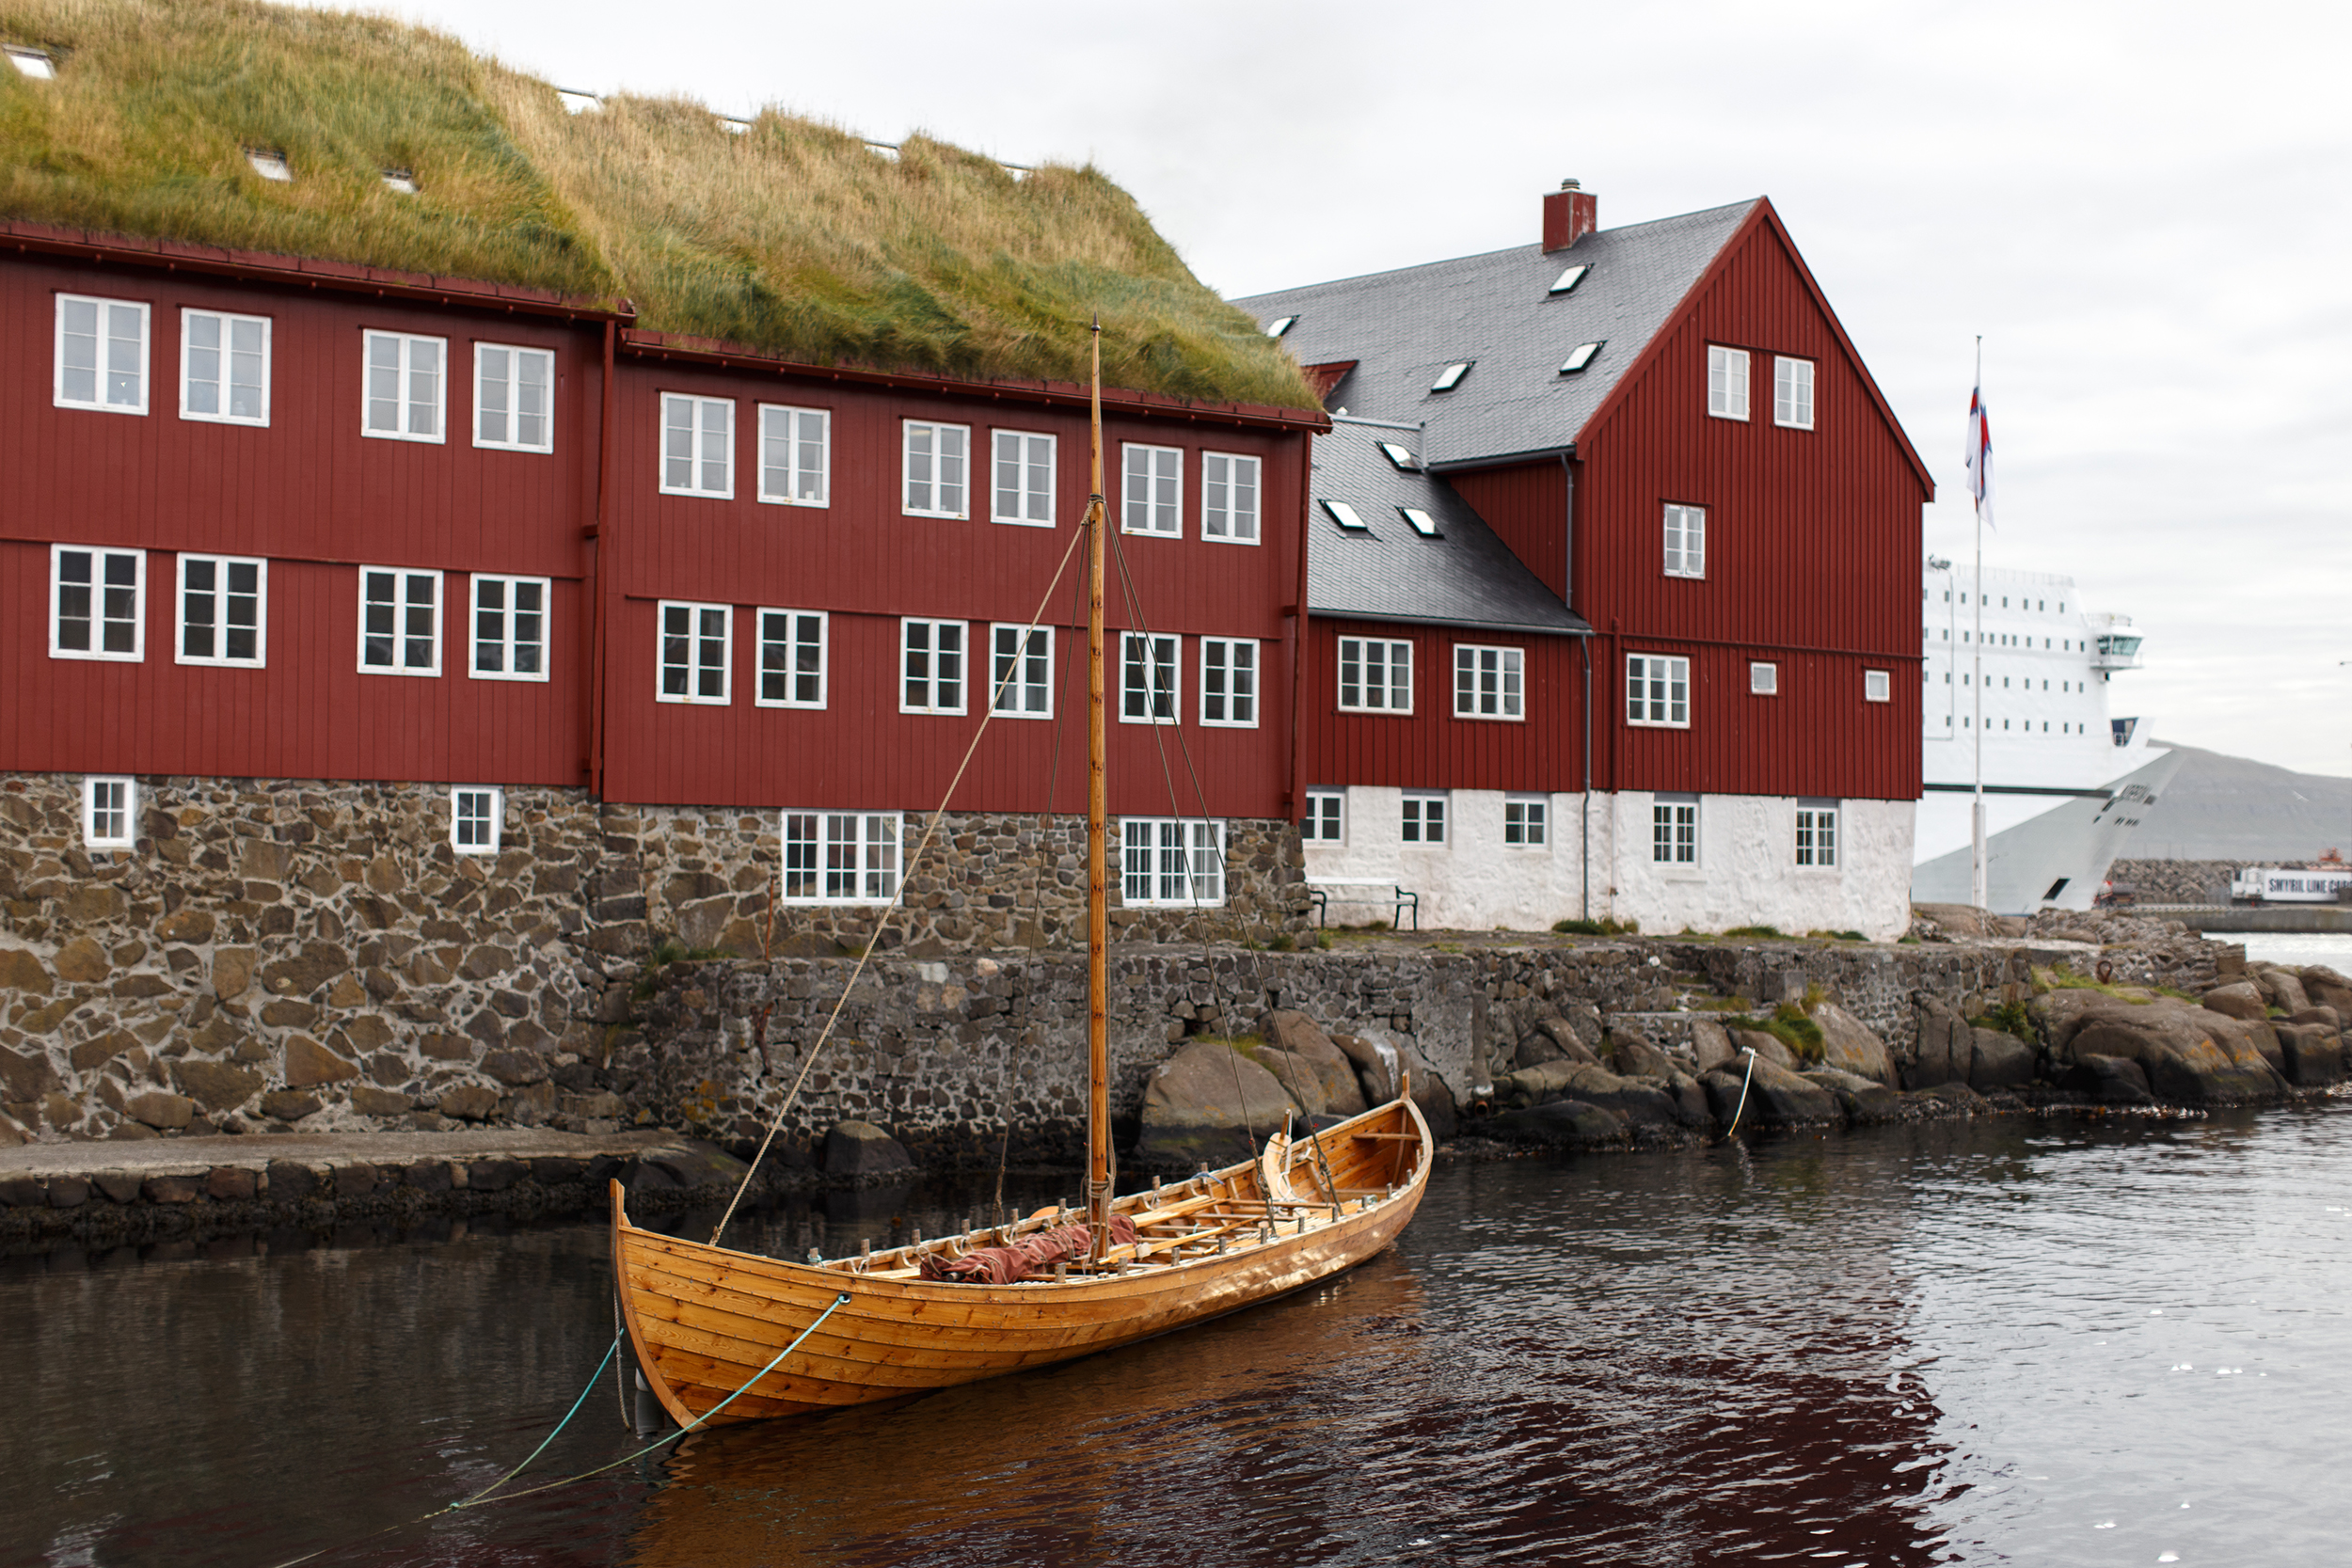 Tórshavn government buildings and longboat